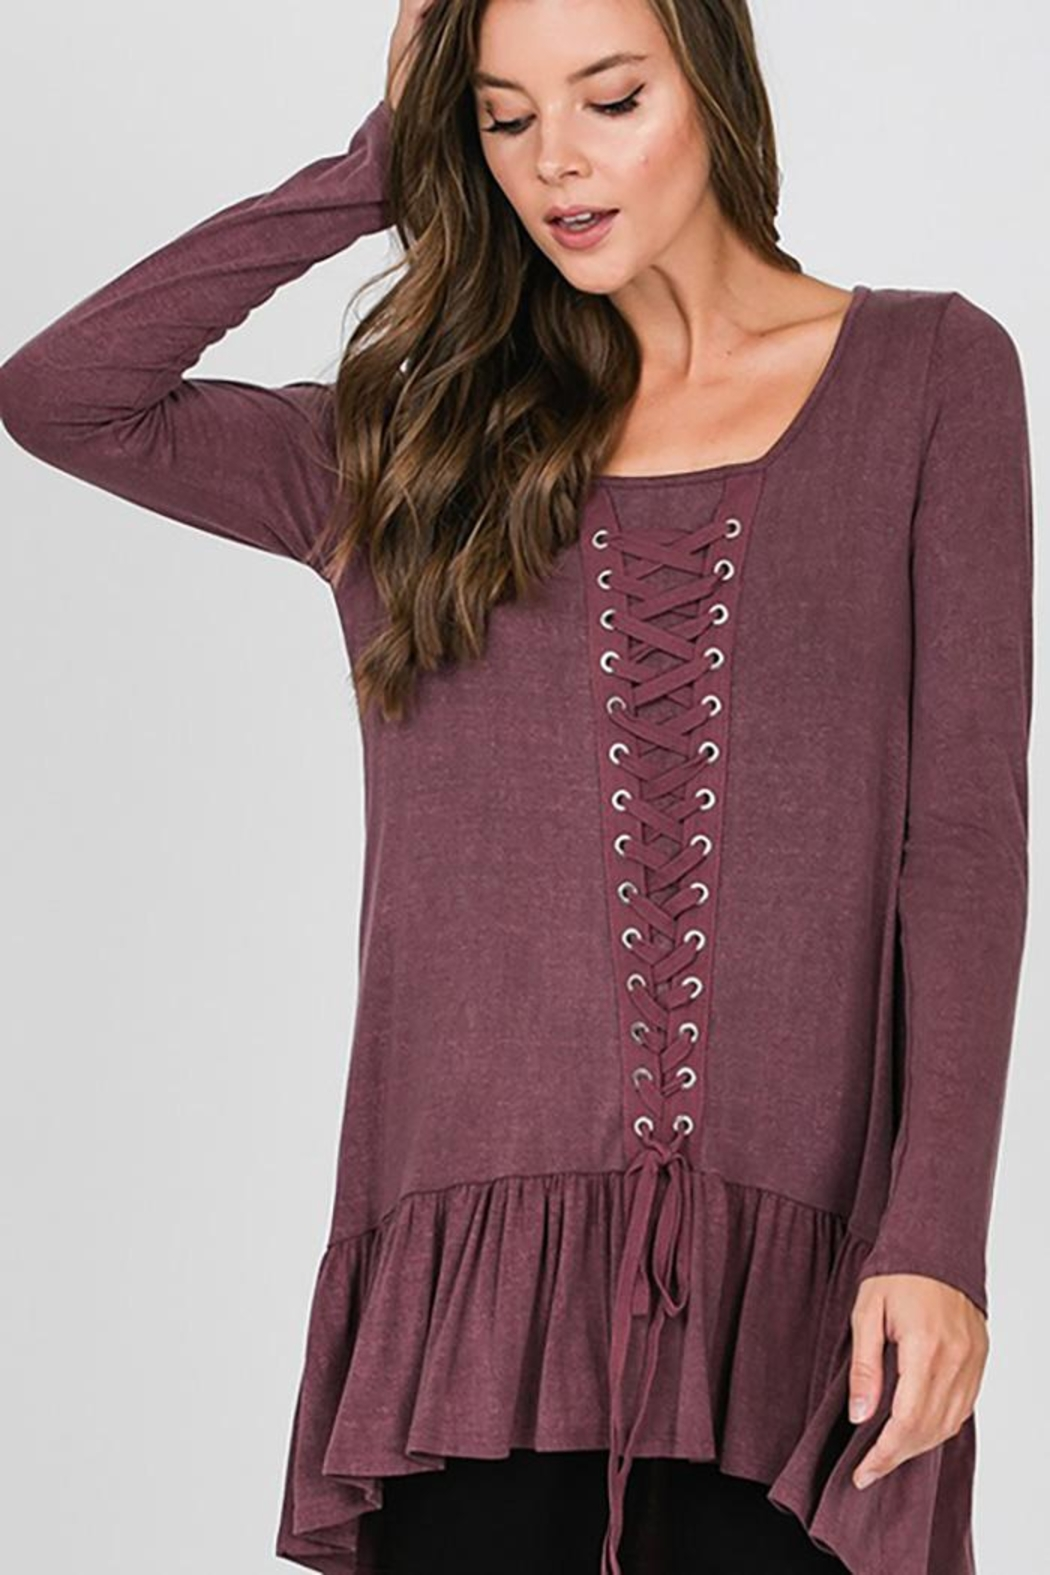 CY Fashion Grommet Lace Up Long Sleeve Top - Main Image